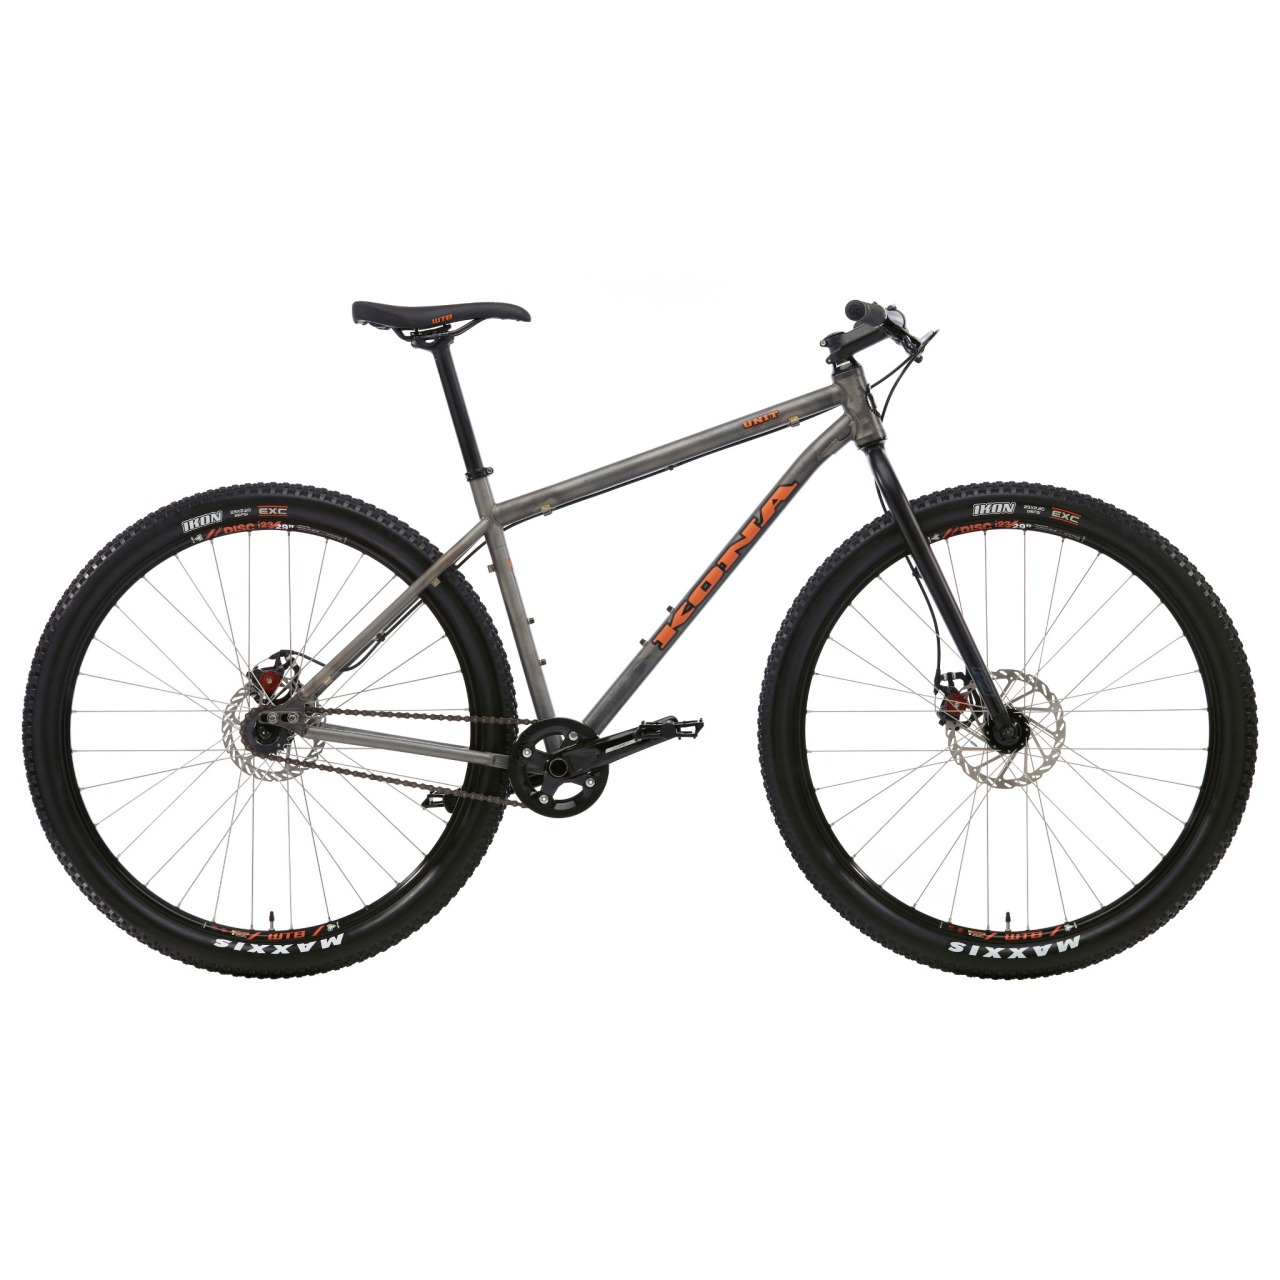 "Kona Unit 29"", 2013's raw steel finish is lovely"